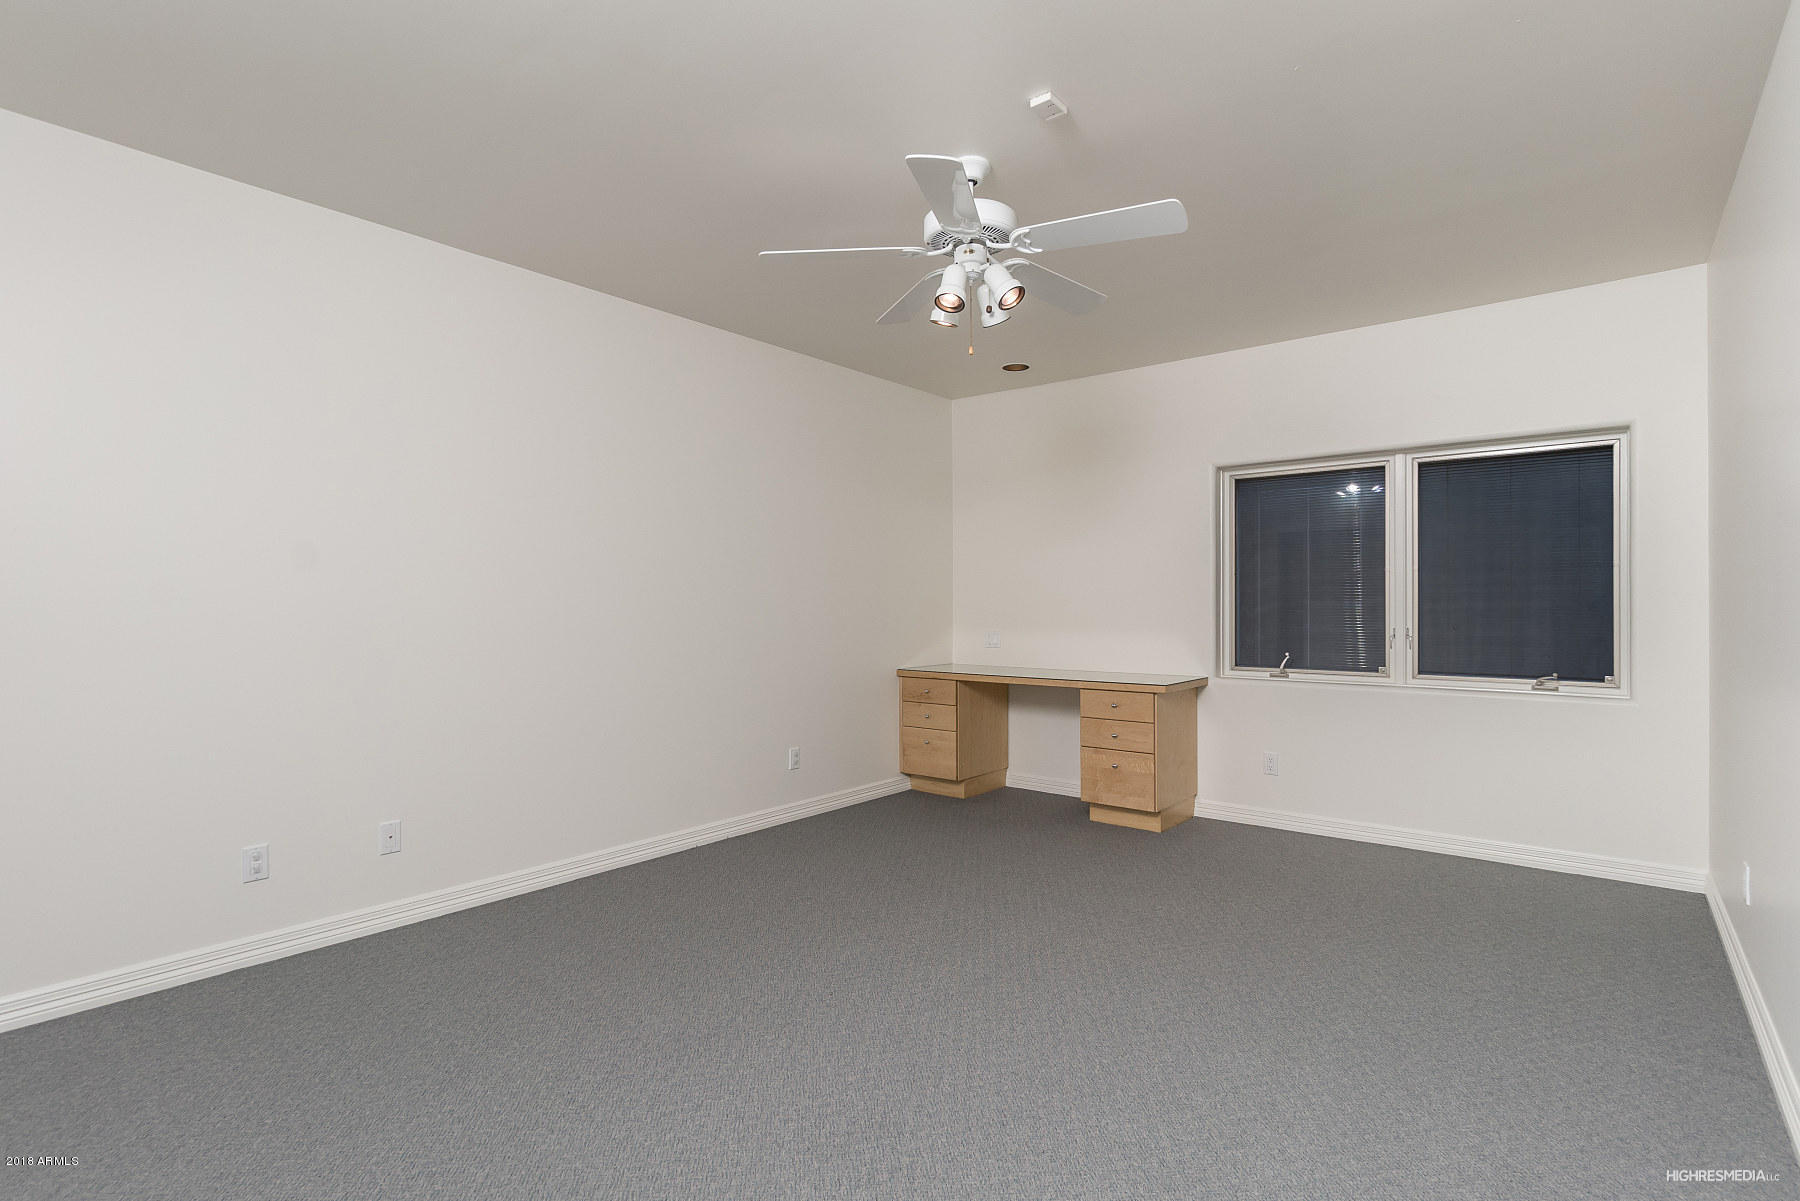 MLS 5847463 1225 E WARNER Road Unit 17, Tempe, AZ 85284 Tempe